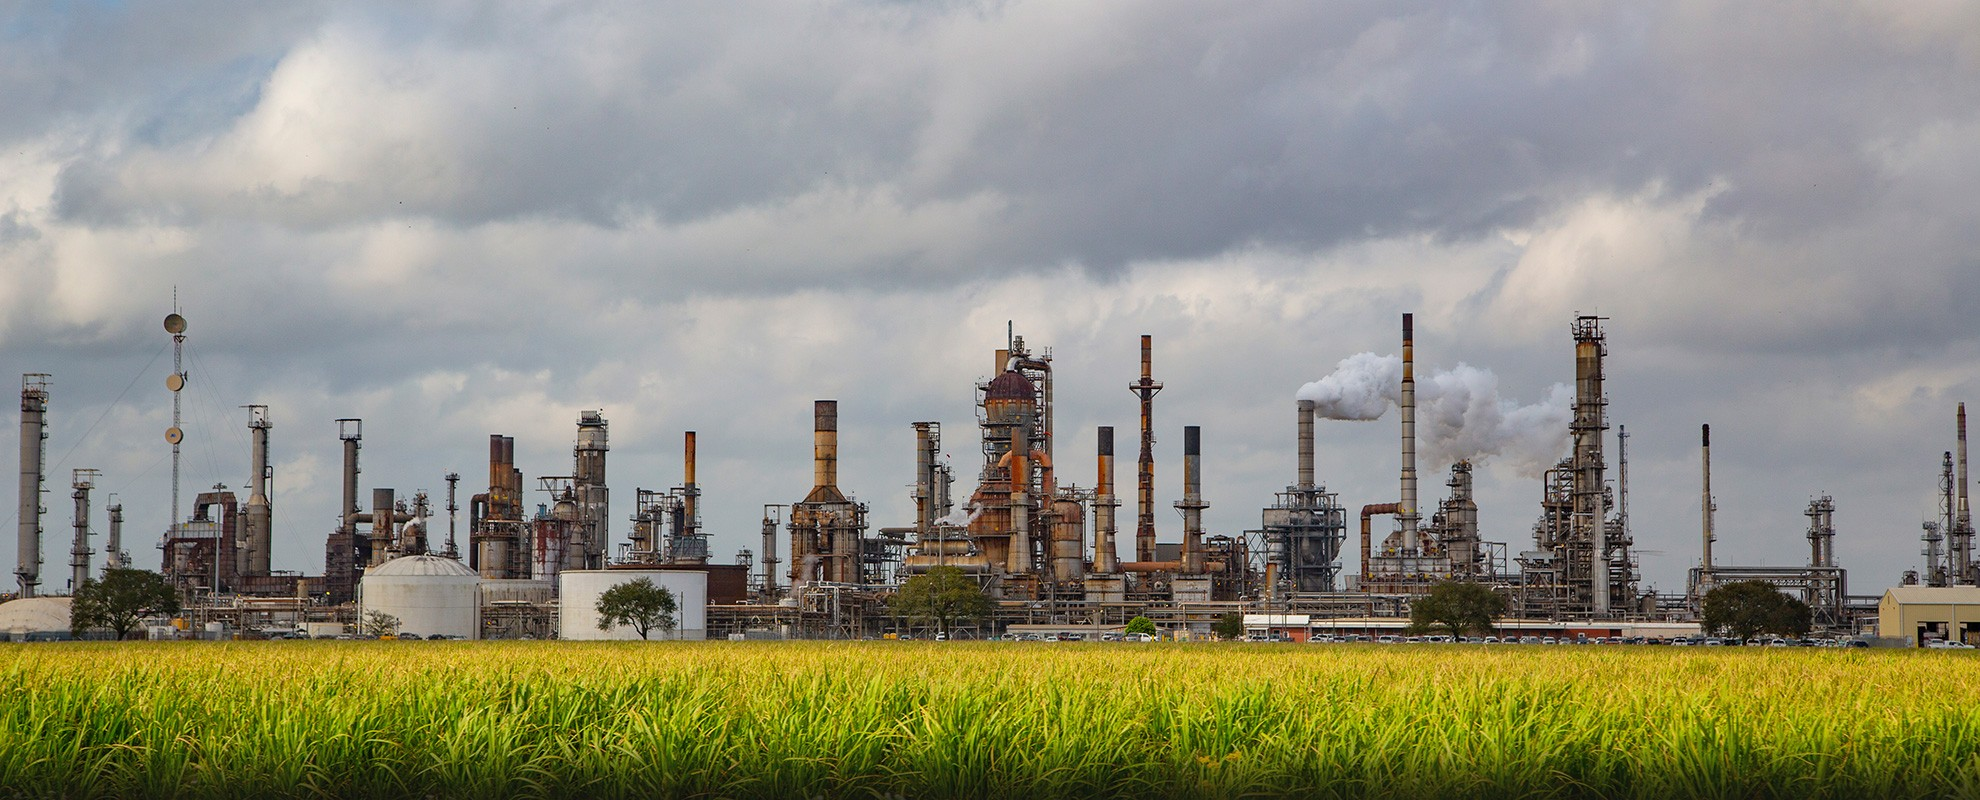 Industrial facilities in Louisiana's Cancer Alley.